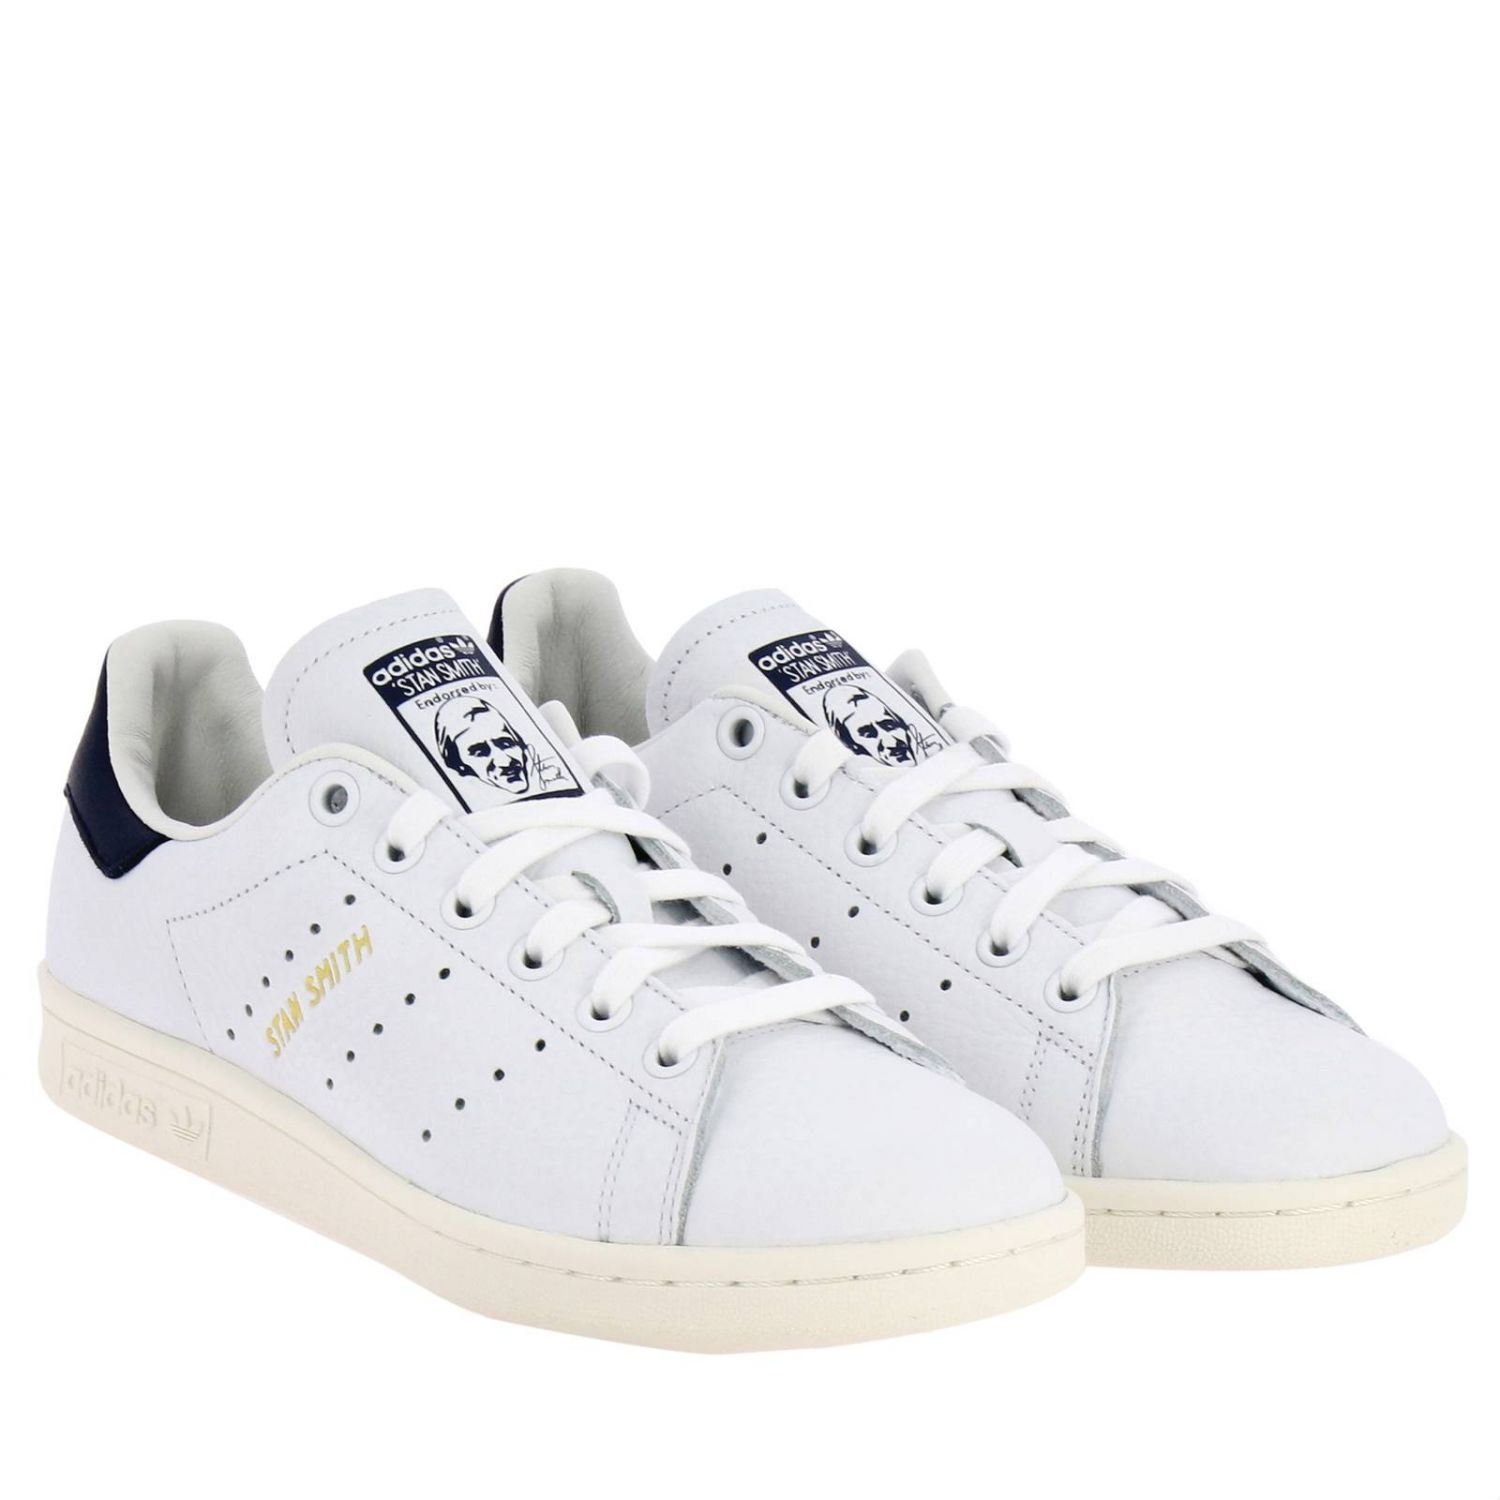 Sneakers Adidas Originals: Sneakers Stan Smith Adidas Originals in pelle con tallone a contrasto bianco 2